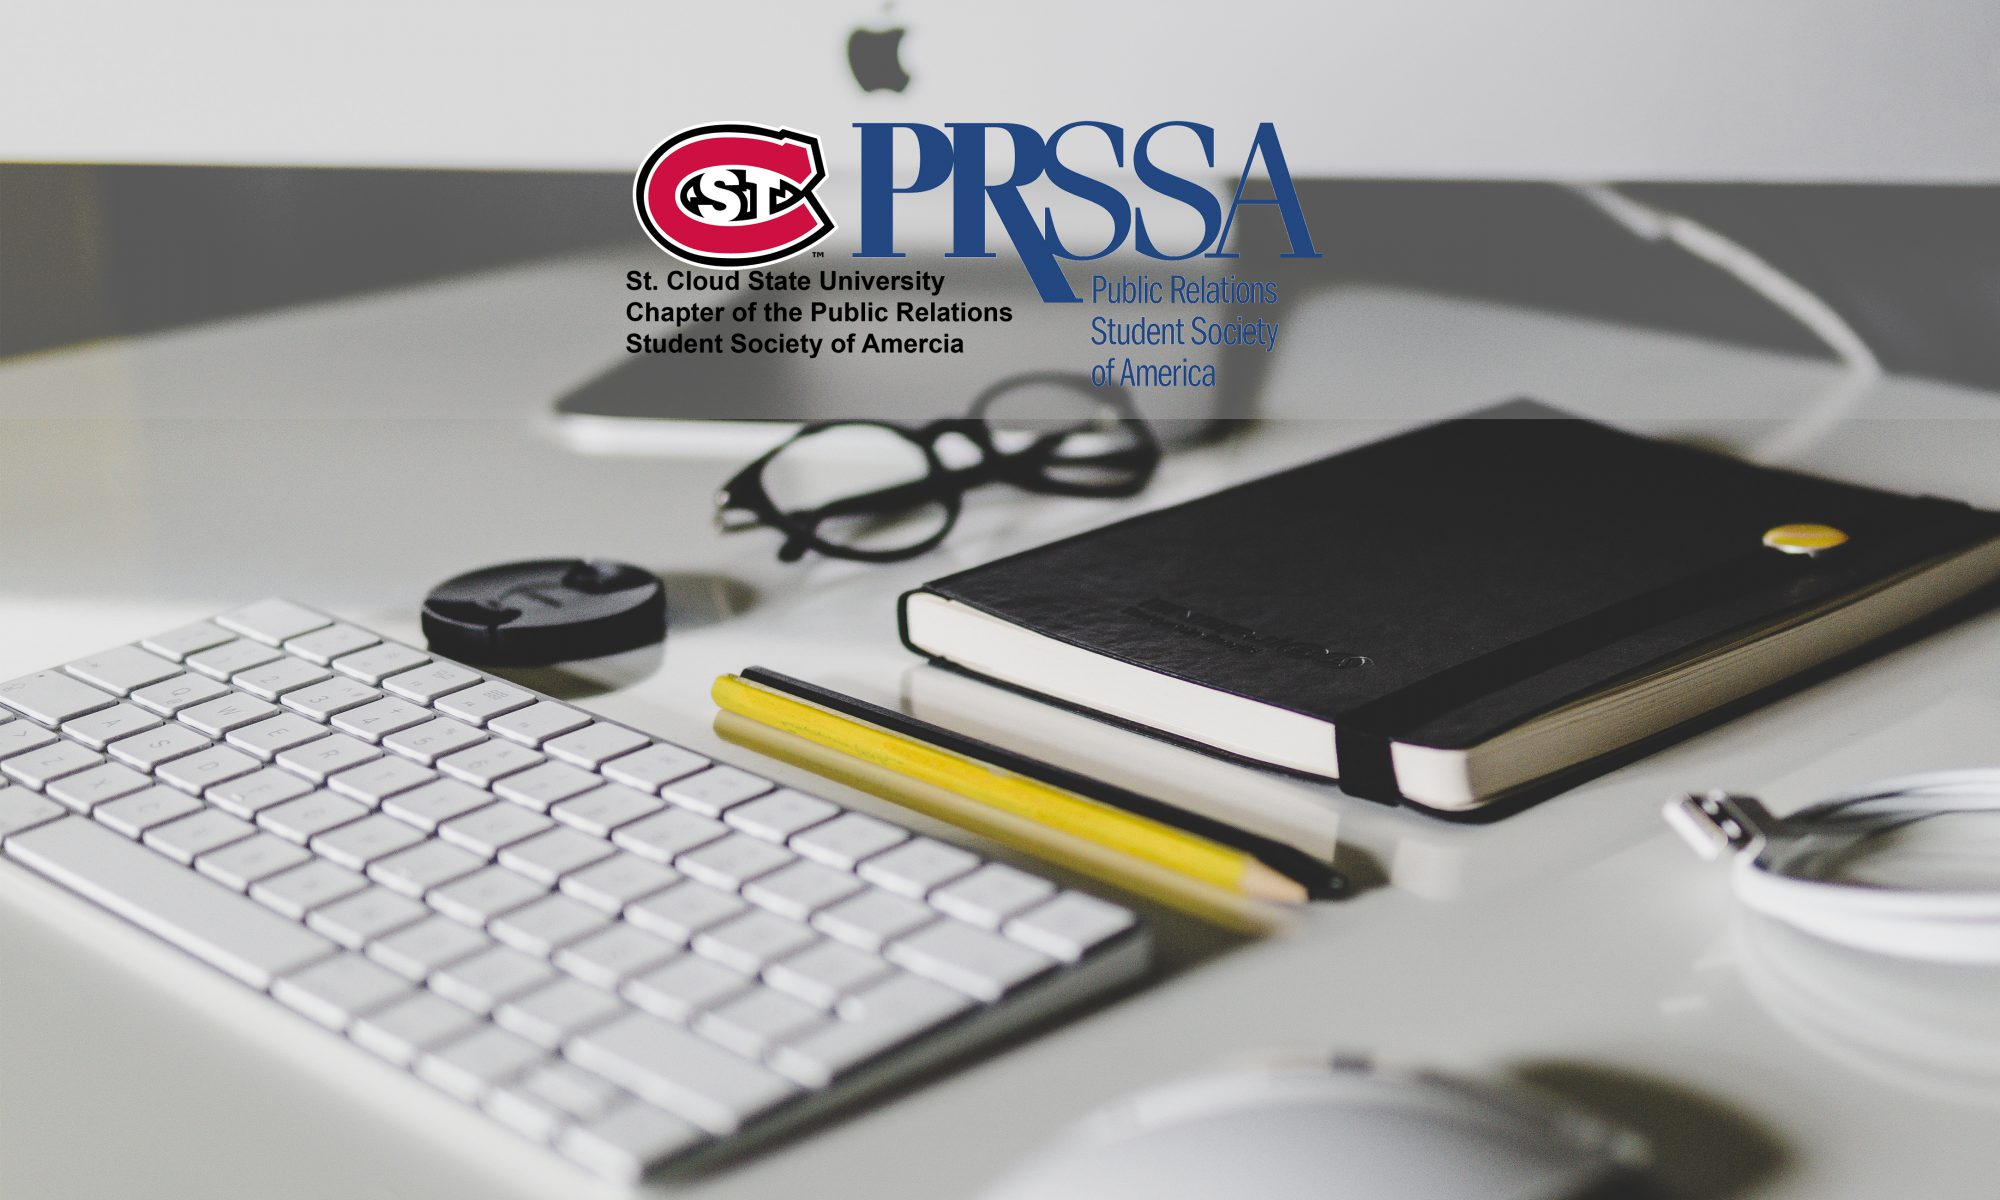 SCSU Chapter of PRSSA